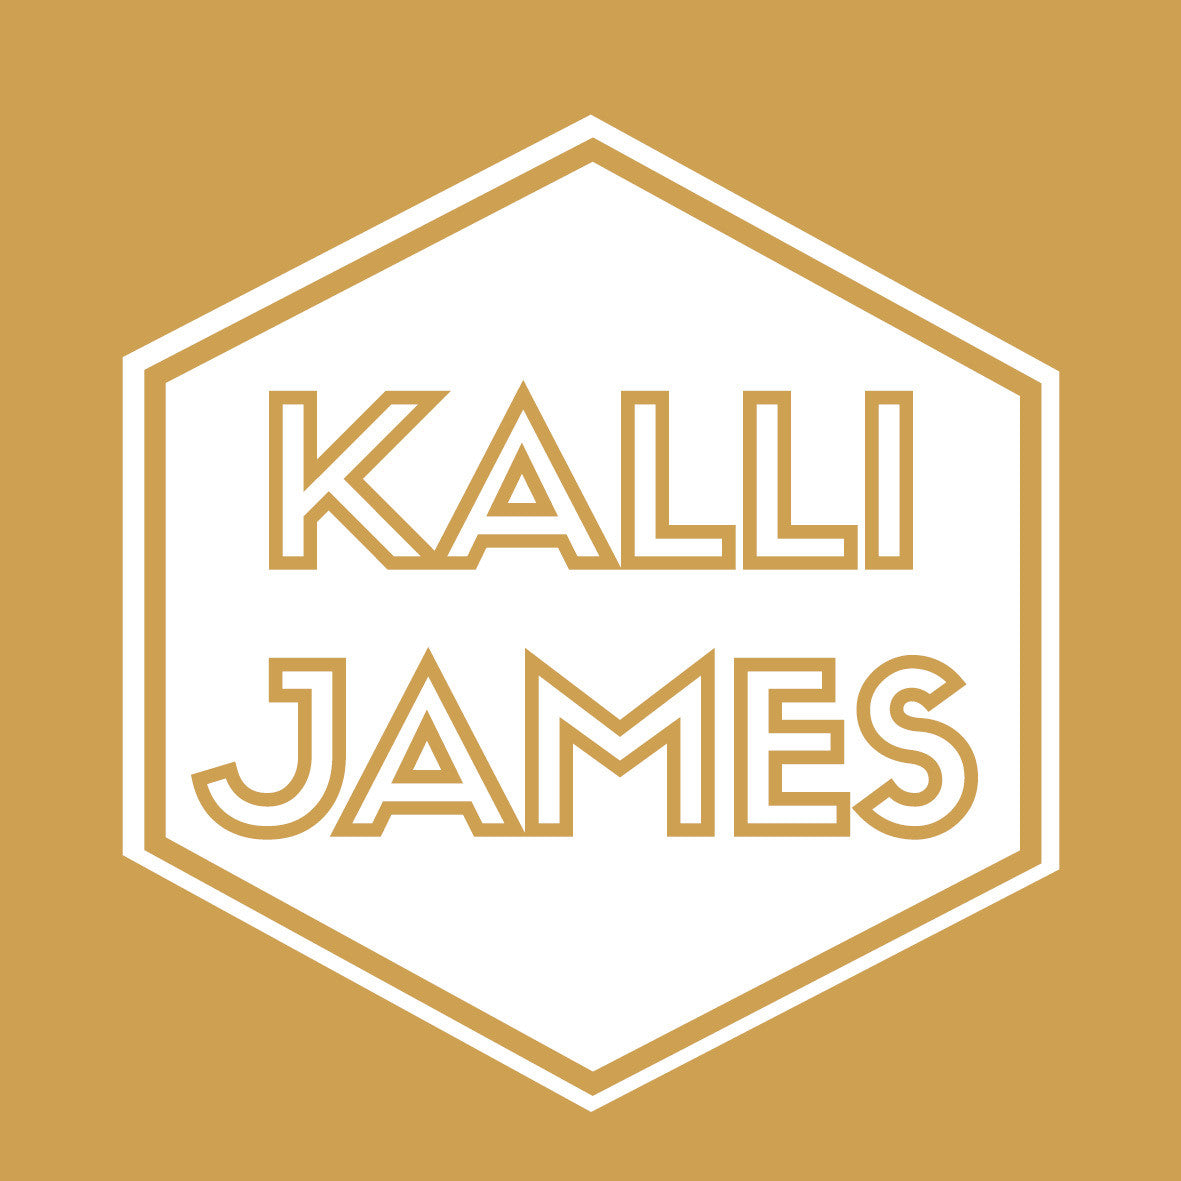 Kalli James is Launching Soon